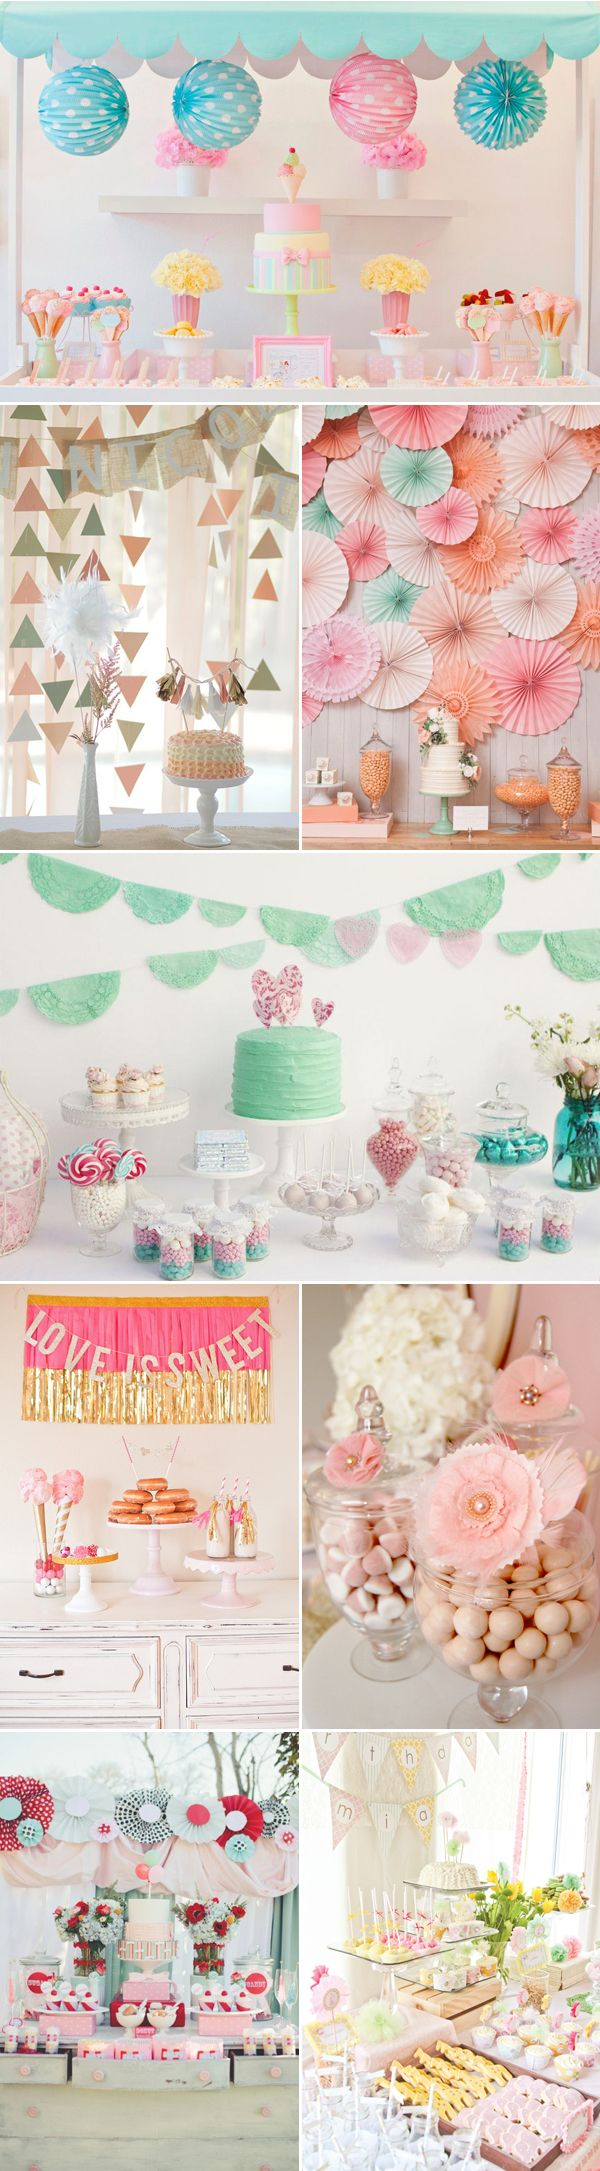 Credits-from-top-left-Just-call-me-Martha-Jay-Adores-Design-Co.-The-Sweetest-Occasion-Ruby-Ju-Sweet-Lulu-Frog-Prince-Paperie-Astyle-Collective-A-Dazzle-Day.jpg 600×2,171 pixeles